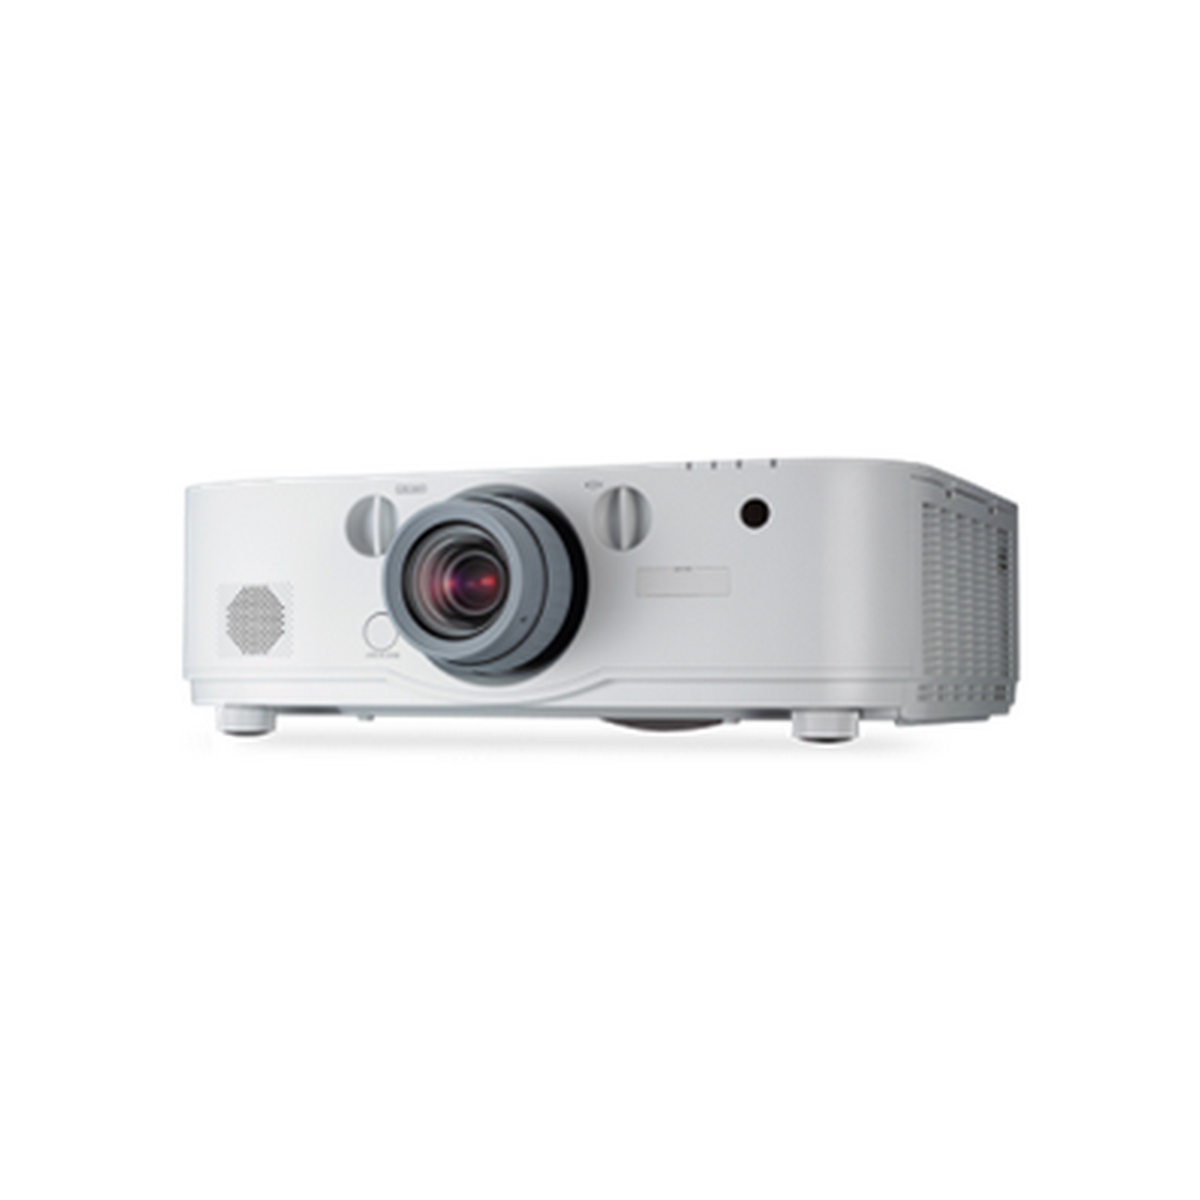 NEC 5700 Lumen Projector NO Lense Included